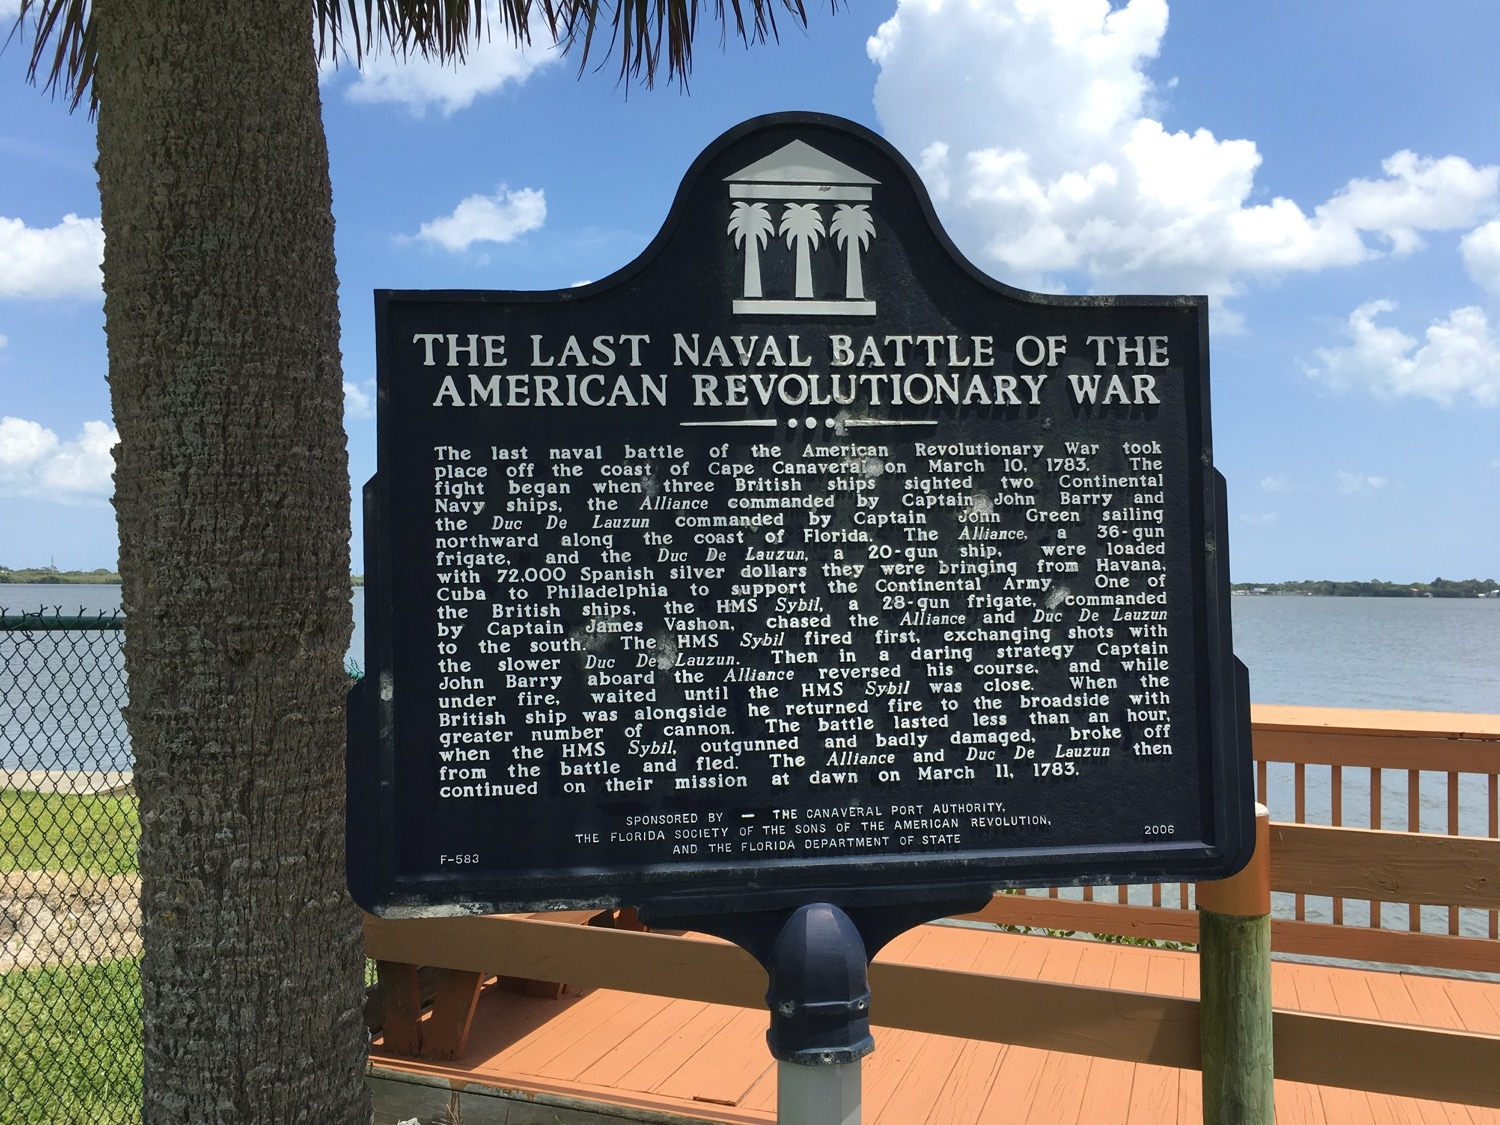 The Last Naval Battle of the American Revolutionary War Marker